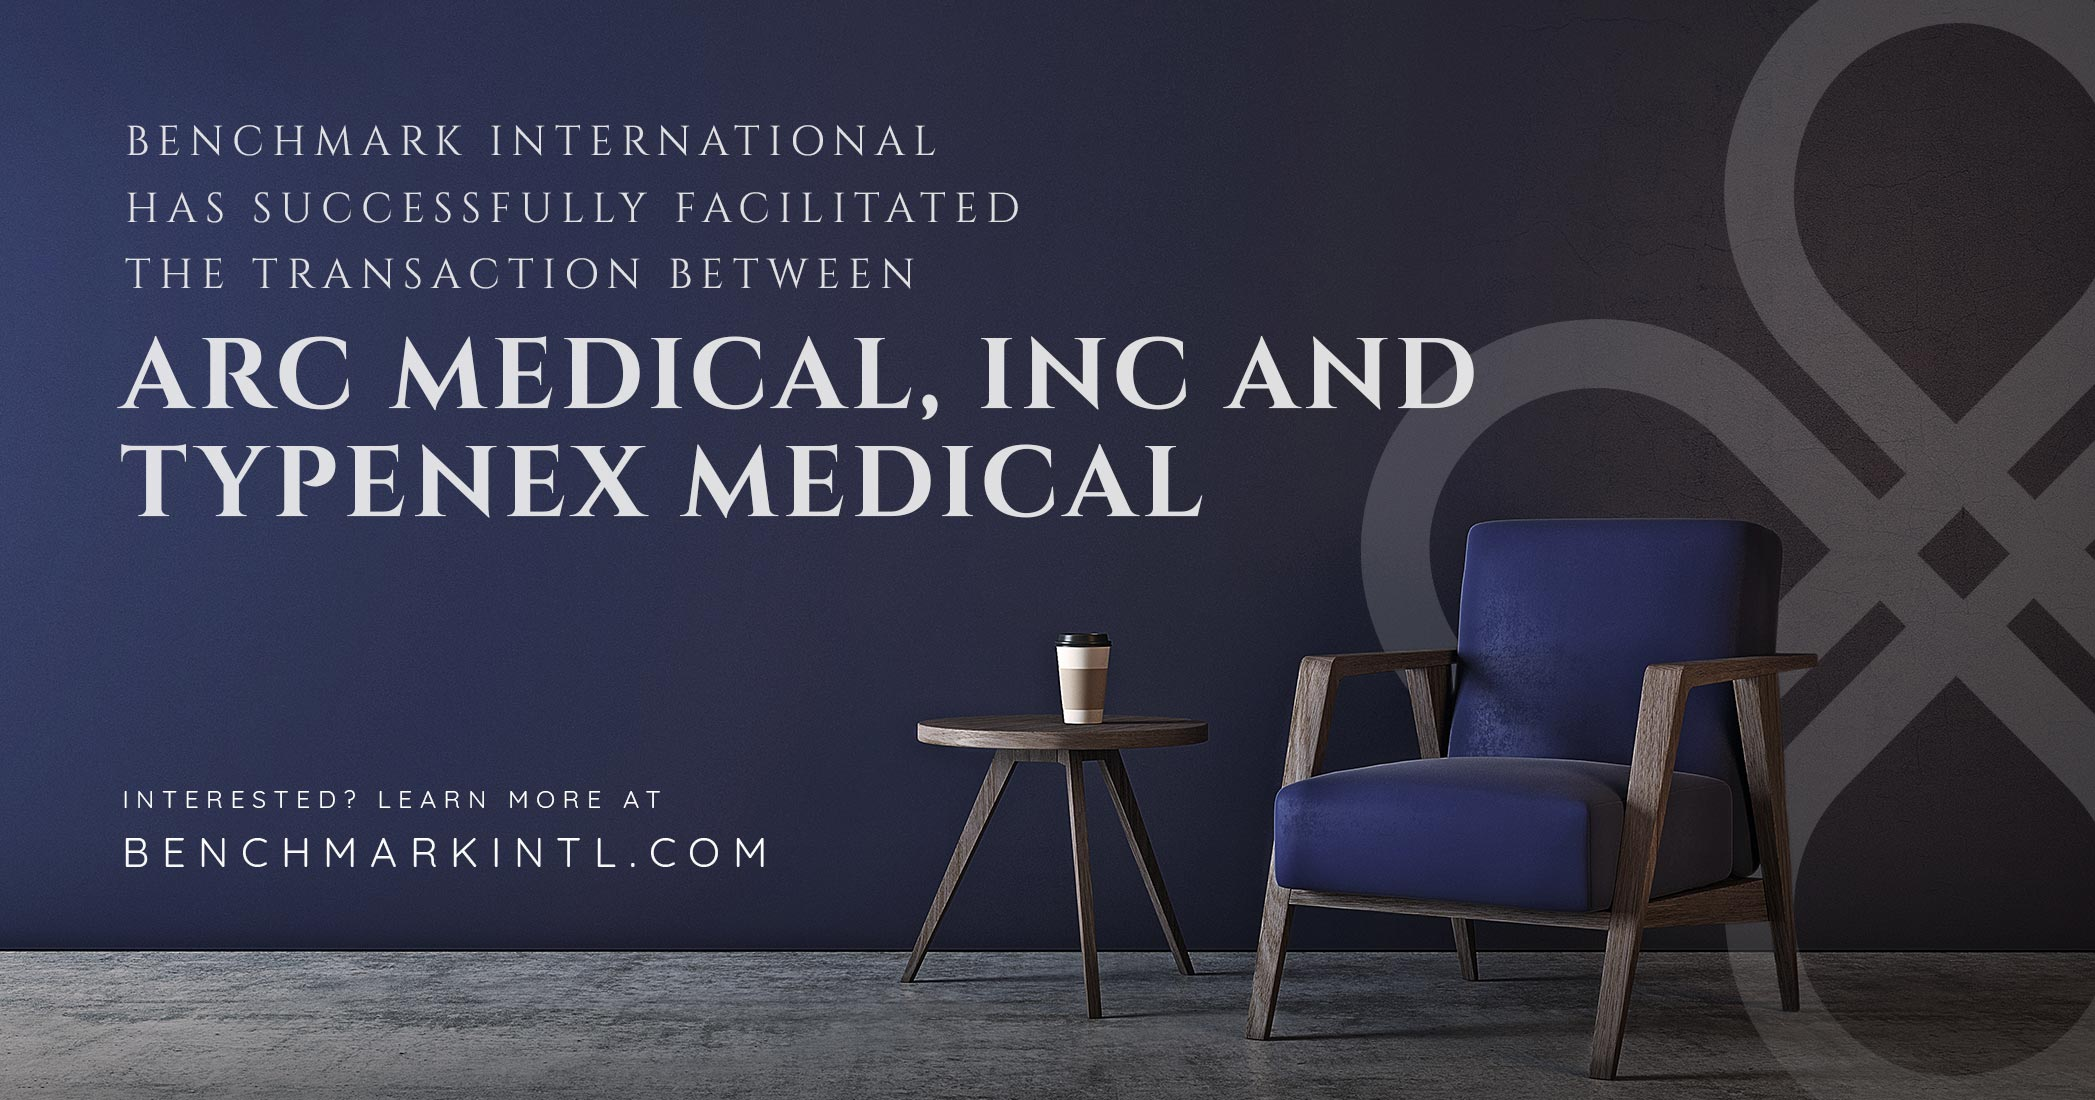 Benchmark International Successfully Facilitated the Transaction Between ARC Medical, Inc. and Typenex Medical